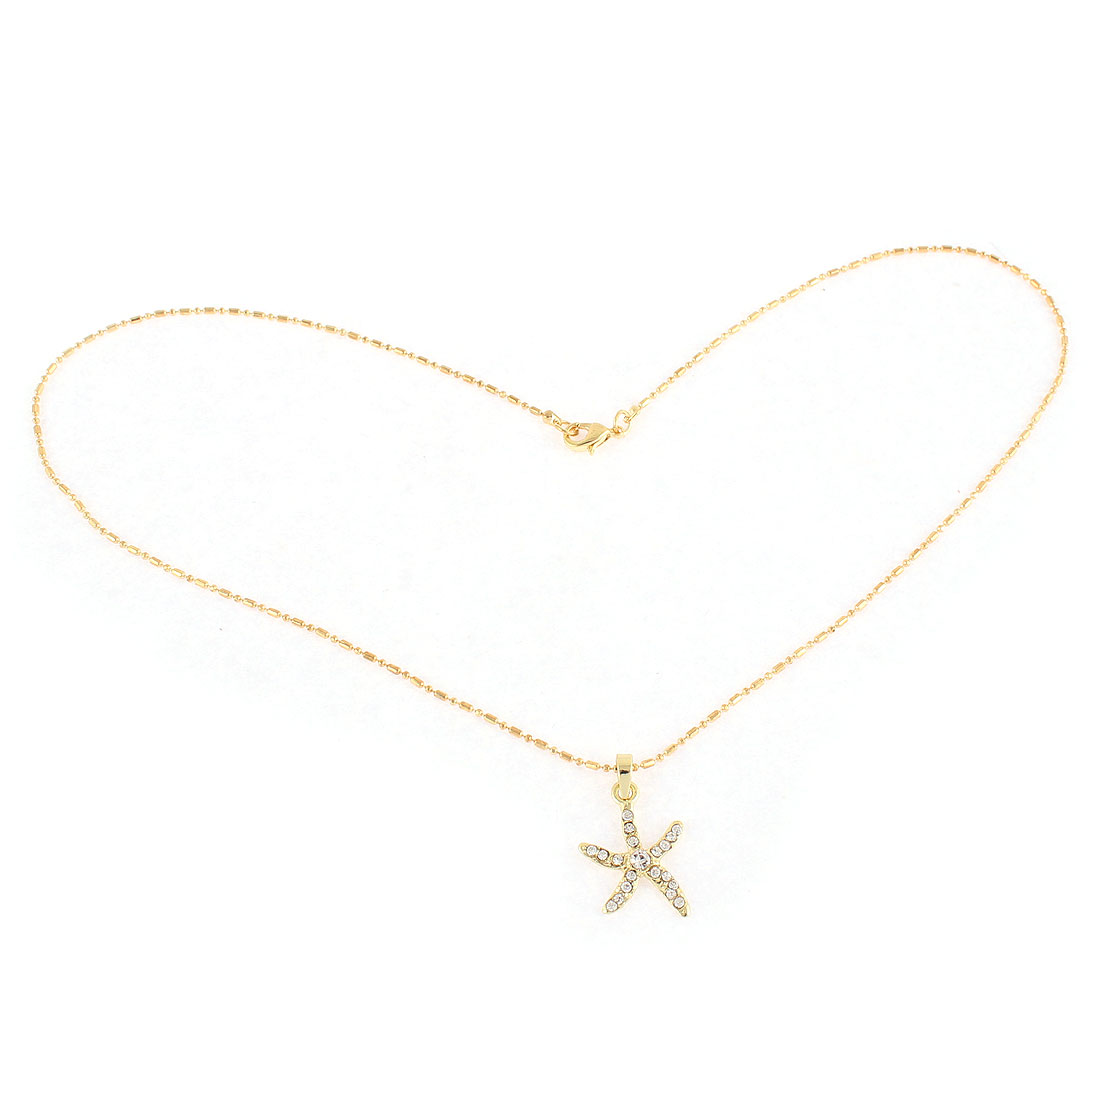 Rhinestone Decor Sea Star Shape Pendant Gold Tone Chain Necklace Jewelry